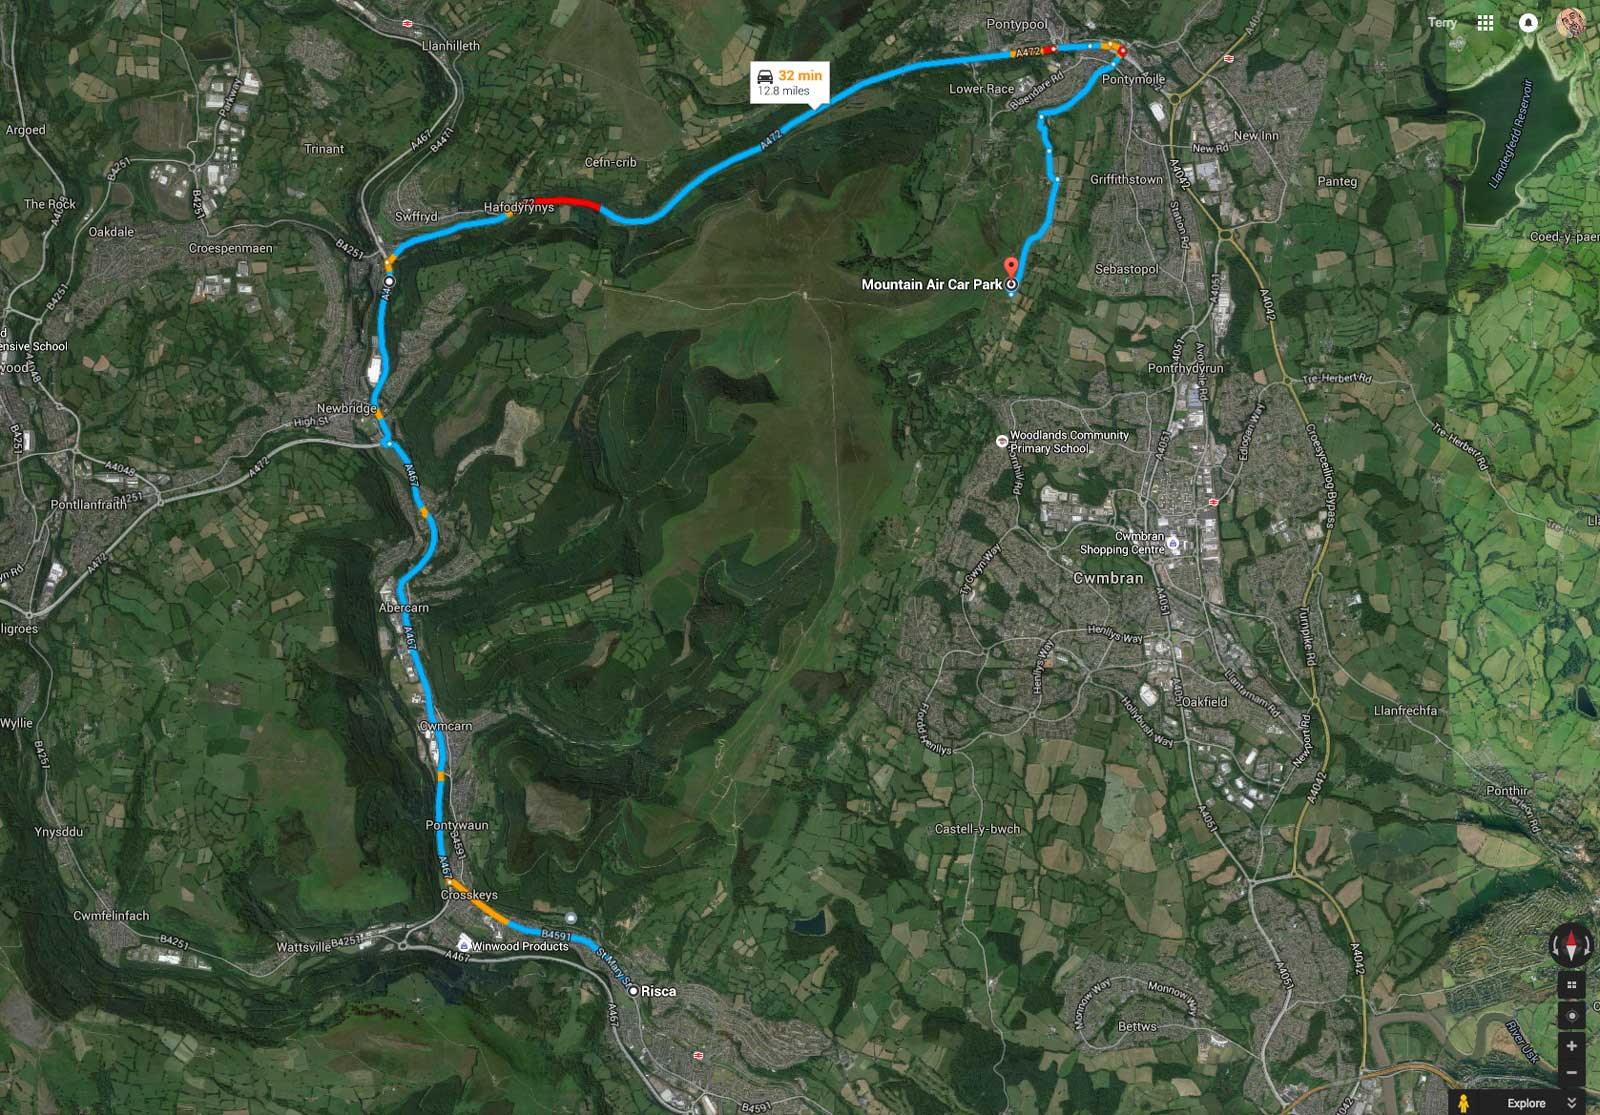 The route to Mountain Air via Crumlin and Pontypool